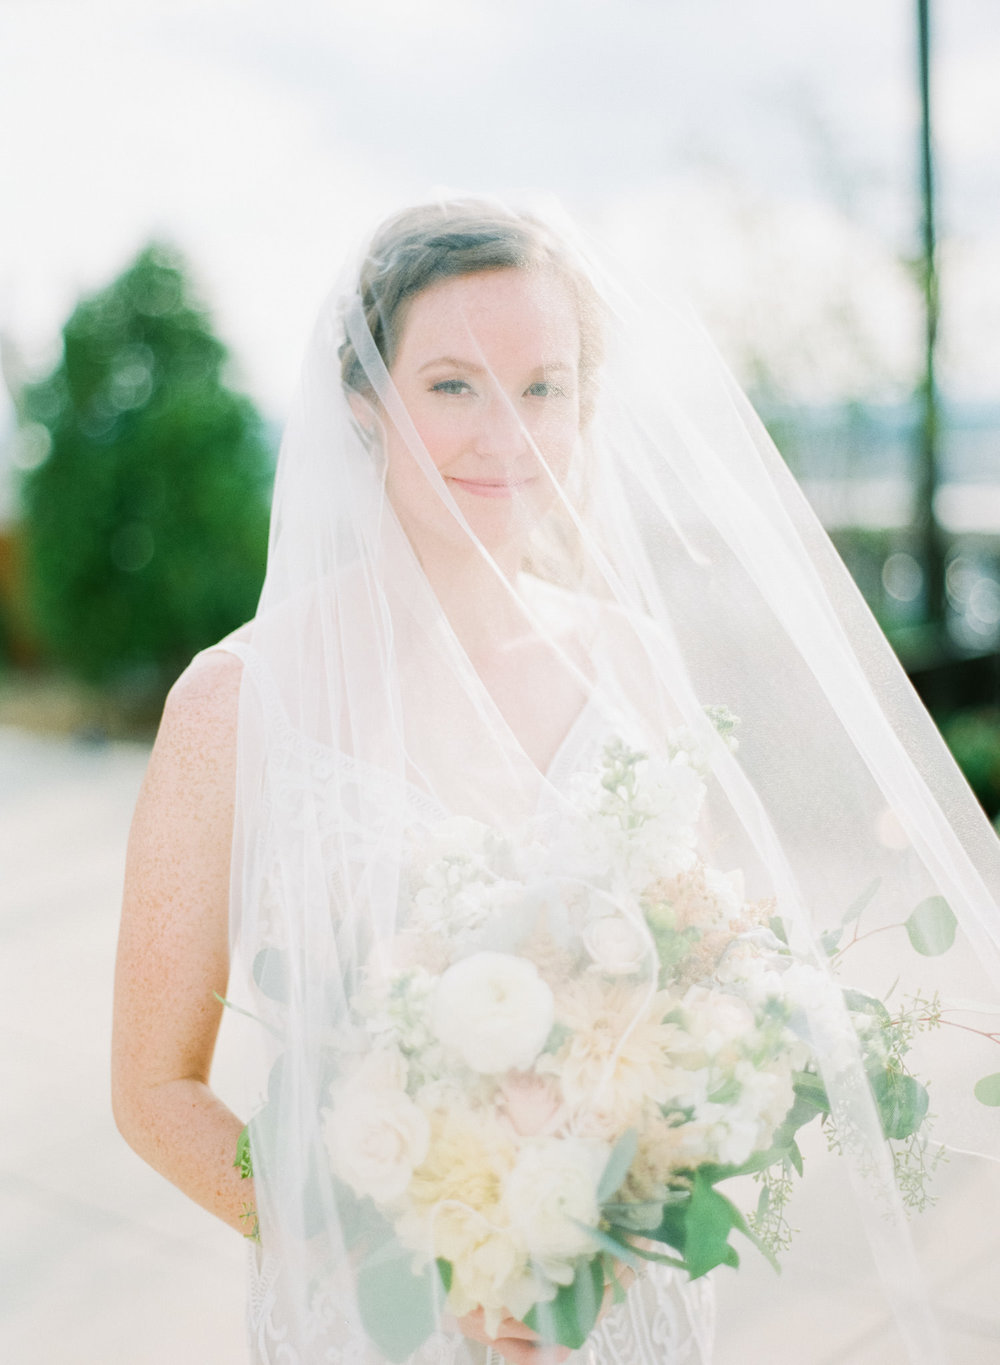 Image of bride under veil taken with Contax 645 and Zeiss 80mm f/2